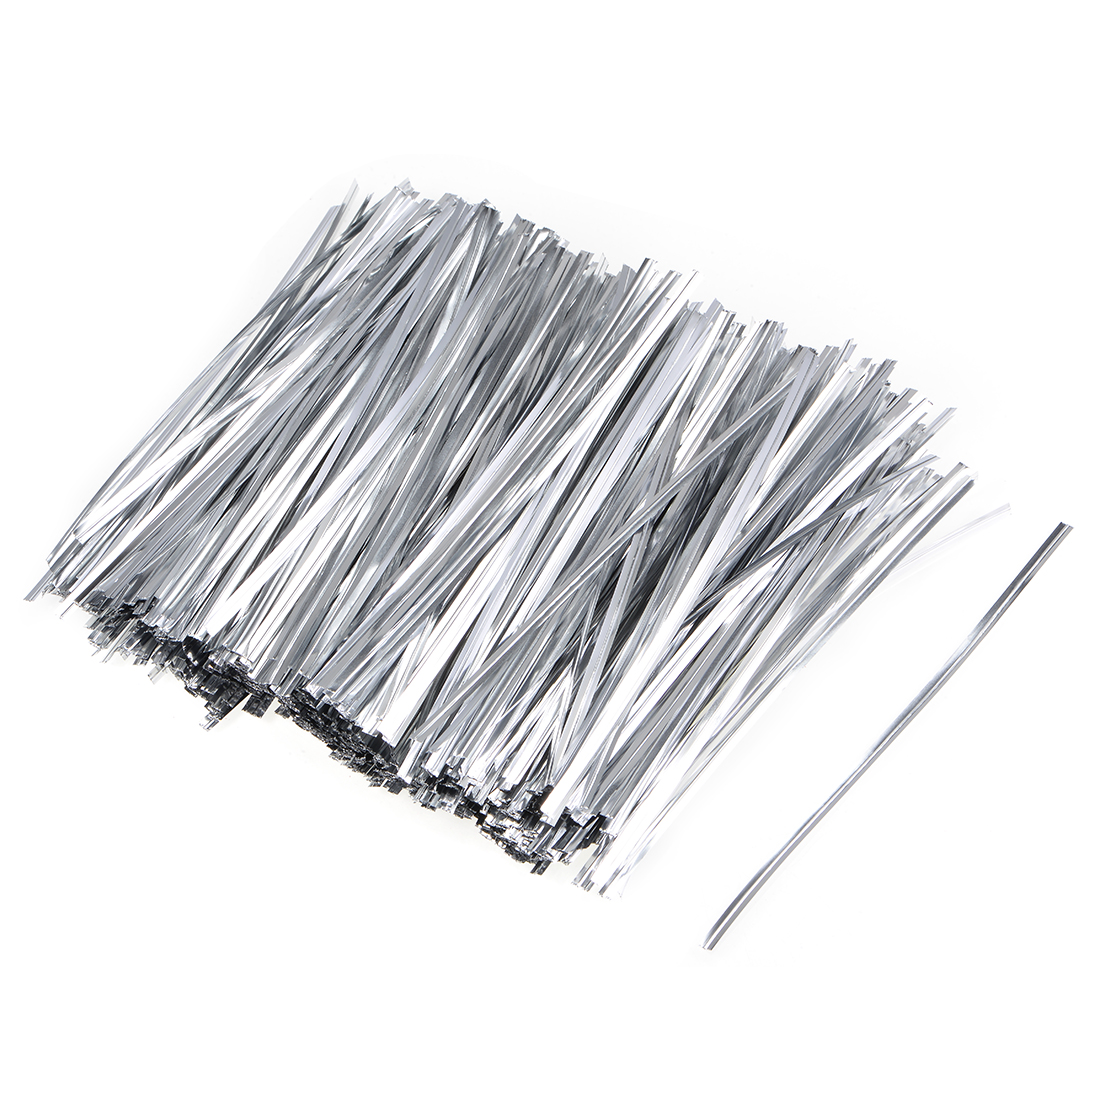 Long Strong Twist Ties 5.9 Inches Quality Plastic Closure Tie Silvery 1000pcs